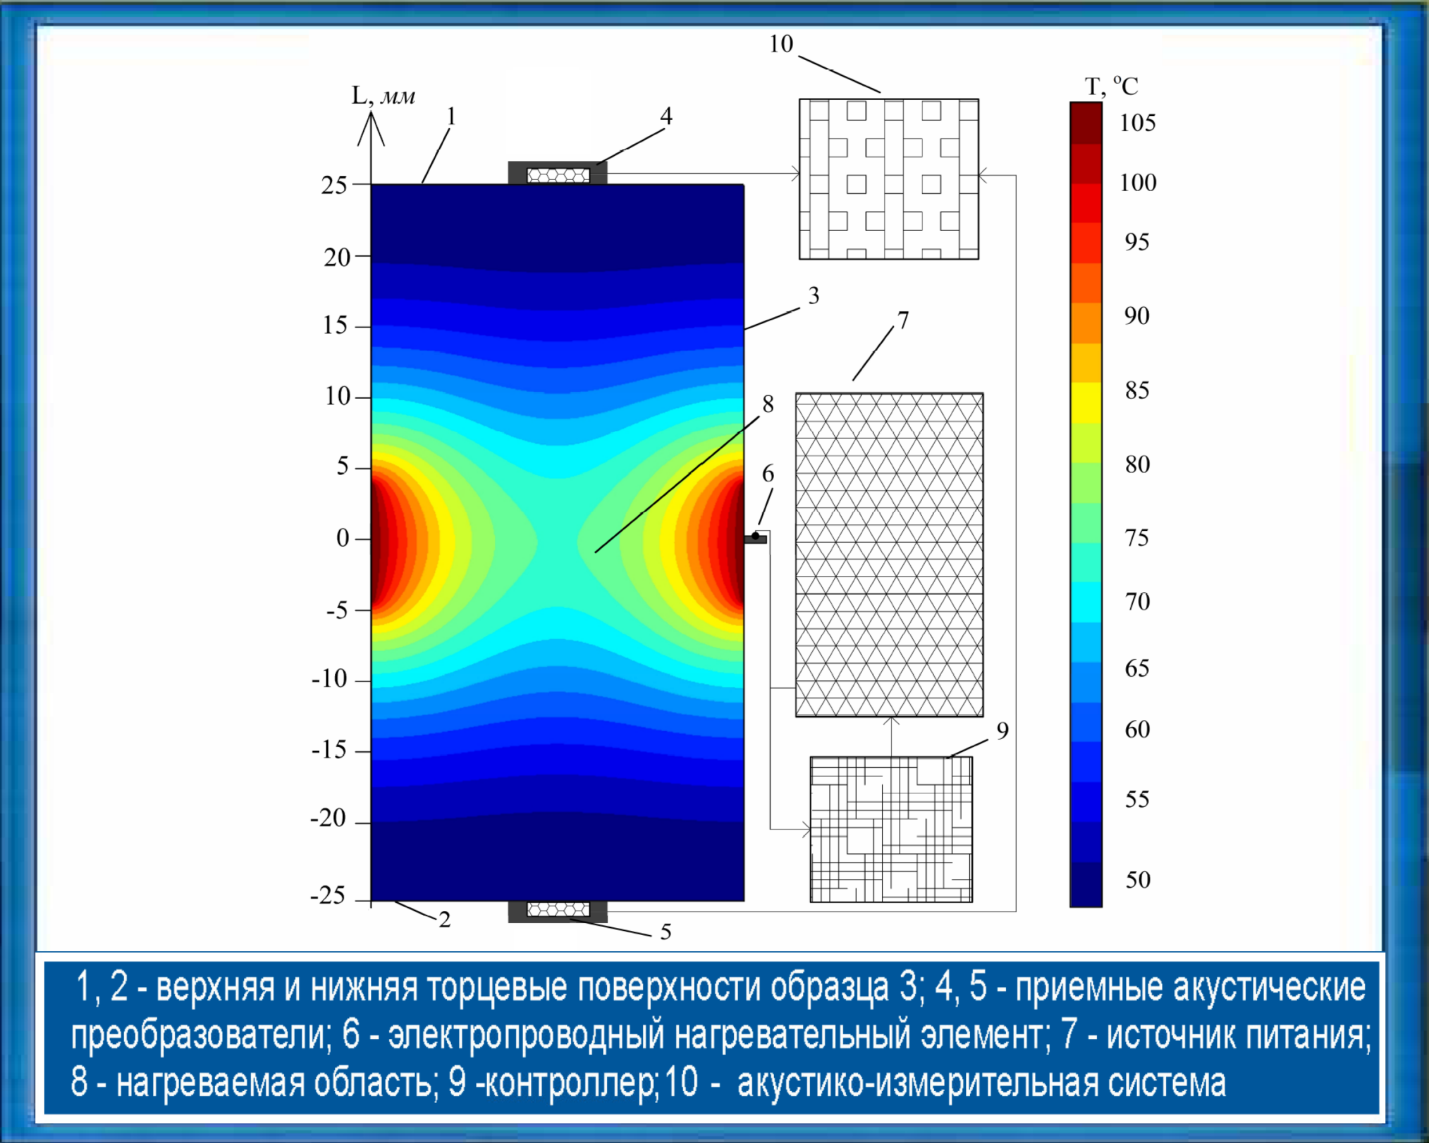 NONDESTRUCTIVE METHOD OF TESTING GEOMATERIAL STRUCTURE AND REGULATIONS COMPLIANCE BY THE METHOD OF THERMALLY STIMULATED ACOUSTIC EMISSION (TSAE)